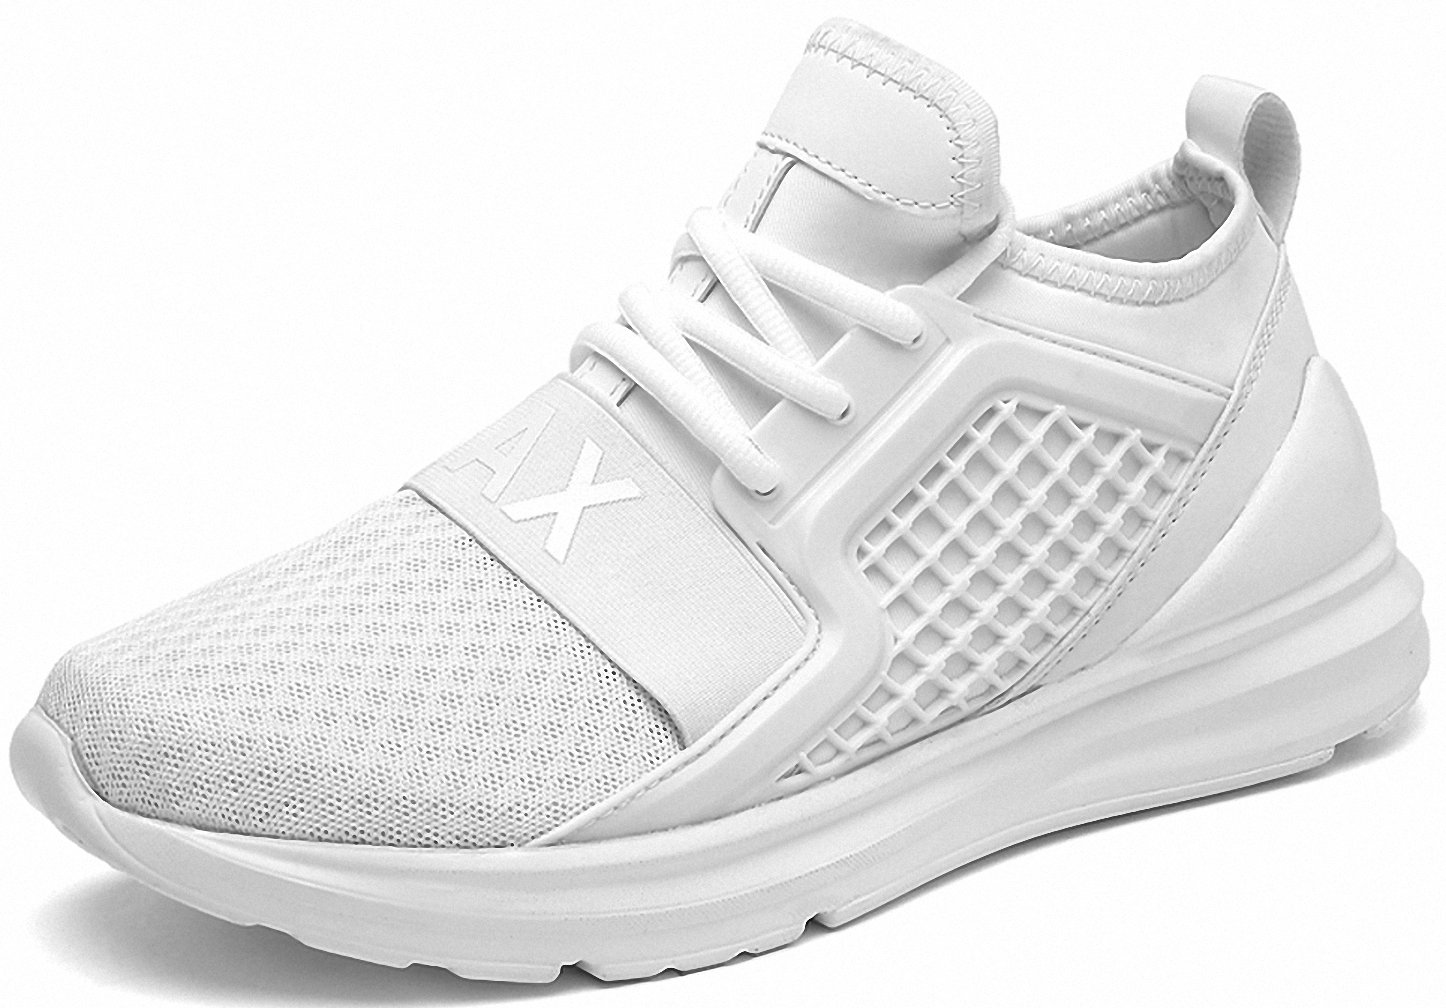 Weweya Men's Road Running Shoes Athletic Training Shoes Casual Walking Sneakers B07DNW6WVB 5 M US|White